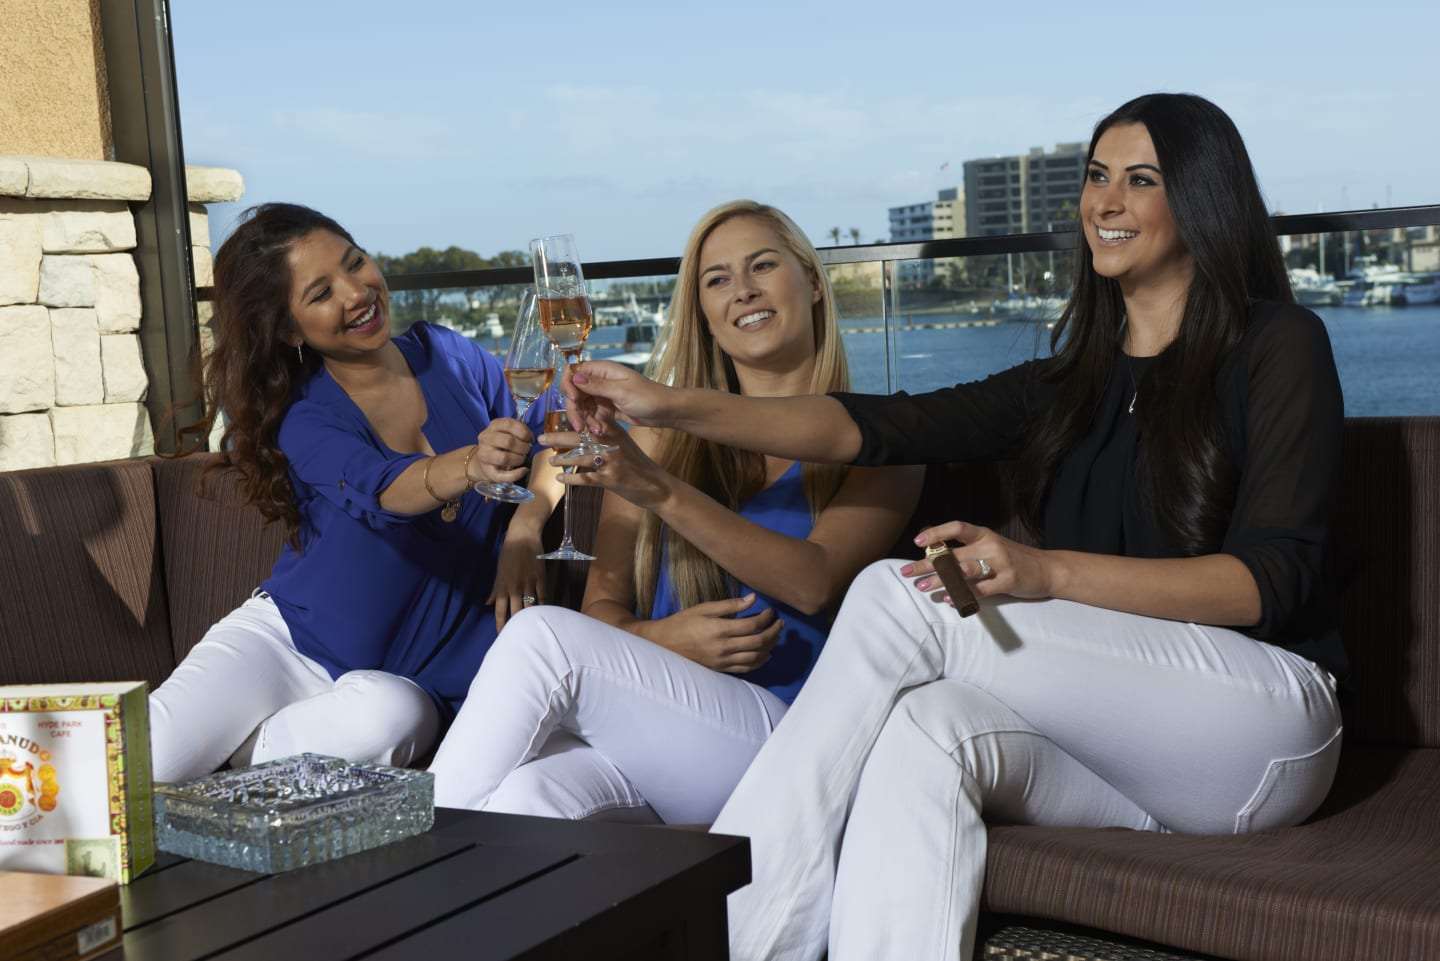 the havana with women and cheers